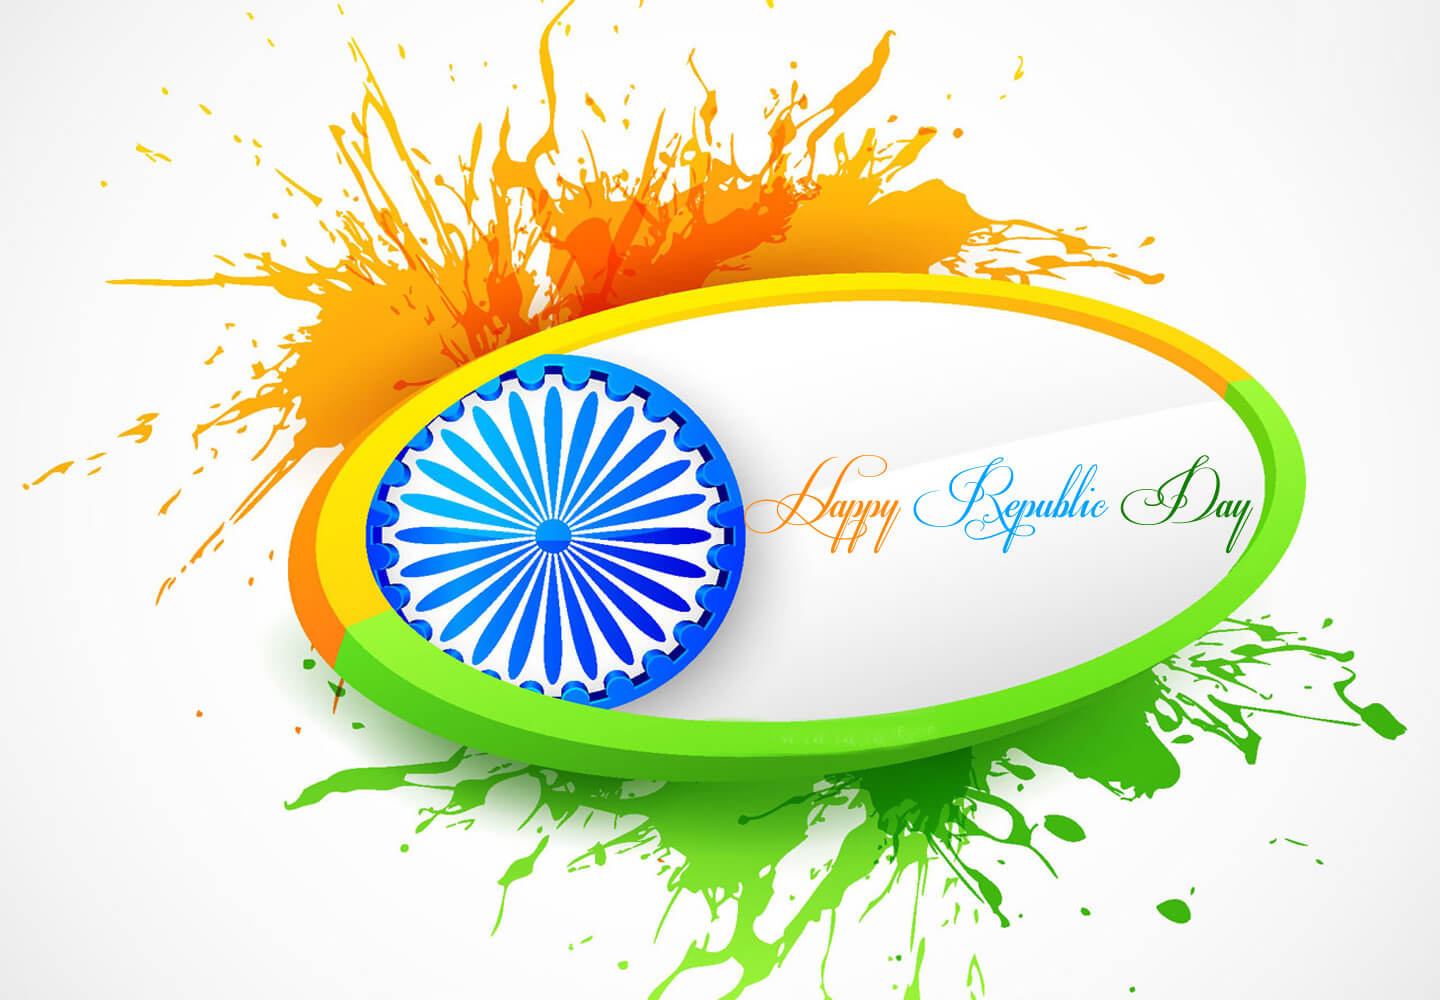 happy republic day wishes india 26 january hd pc modern wallpaper